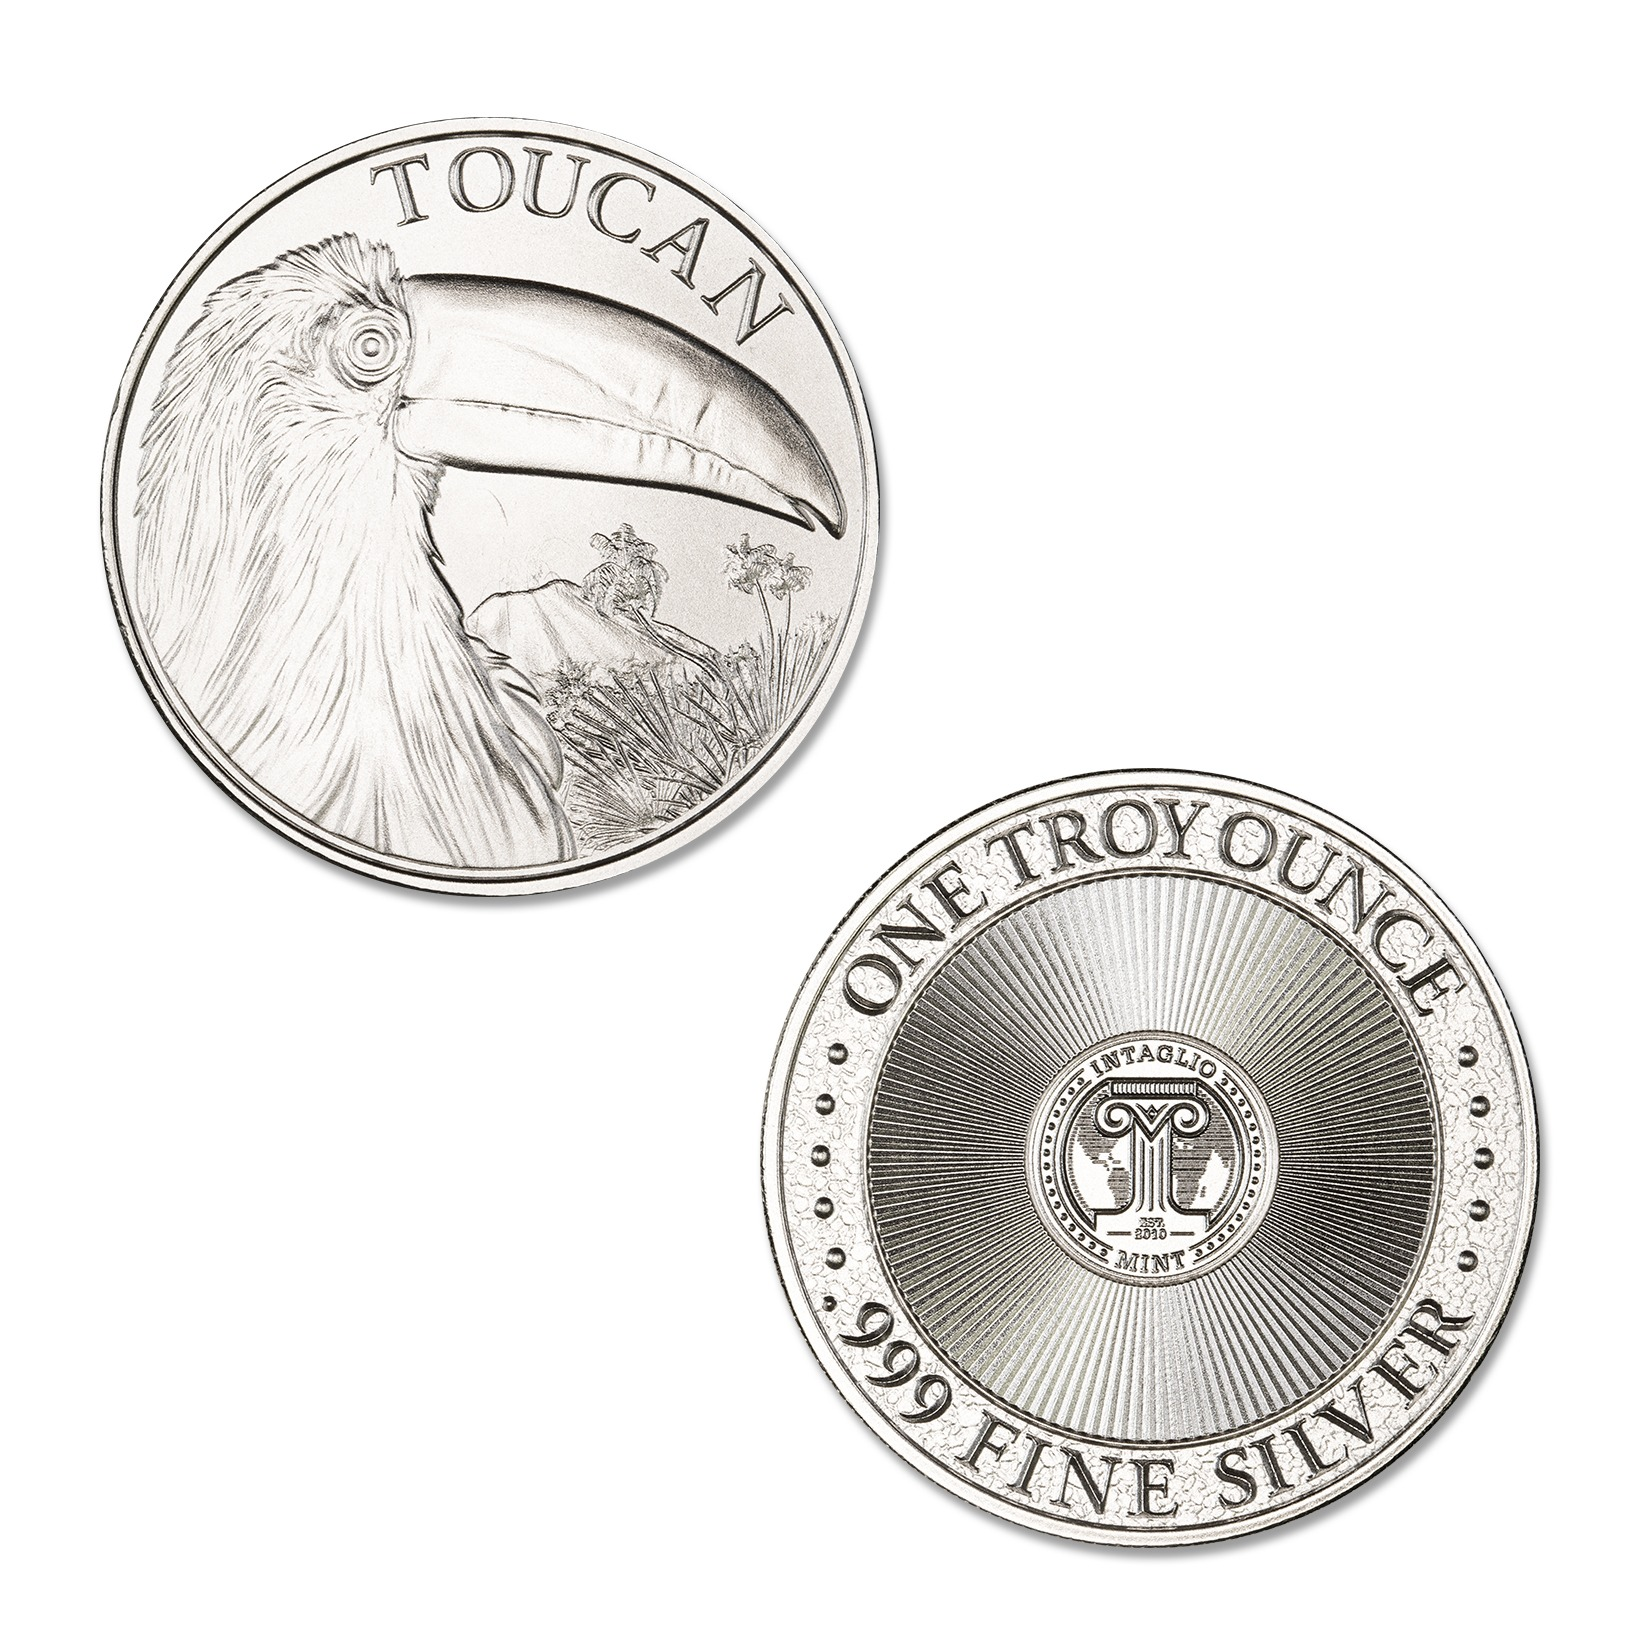 TOUCAN – 1 TROY OUNCE – 39MM